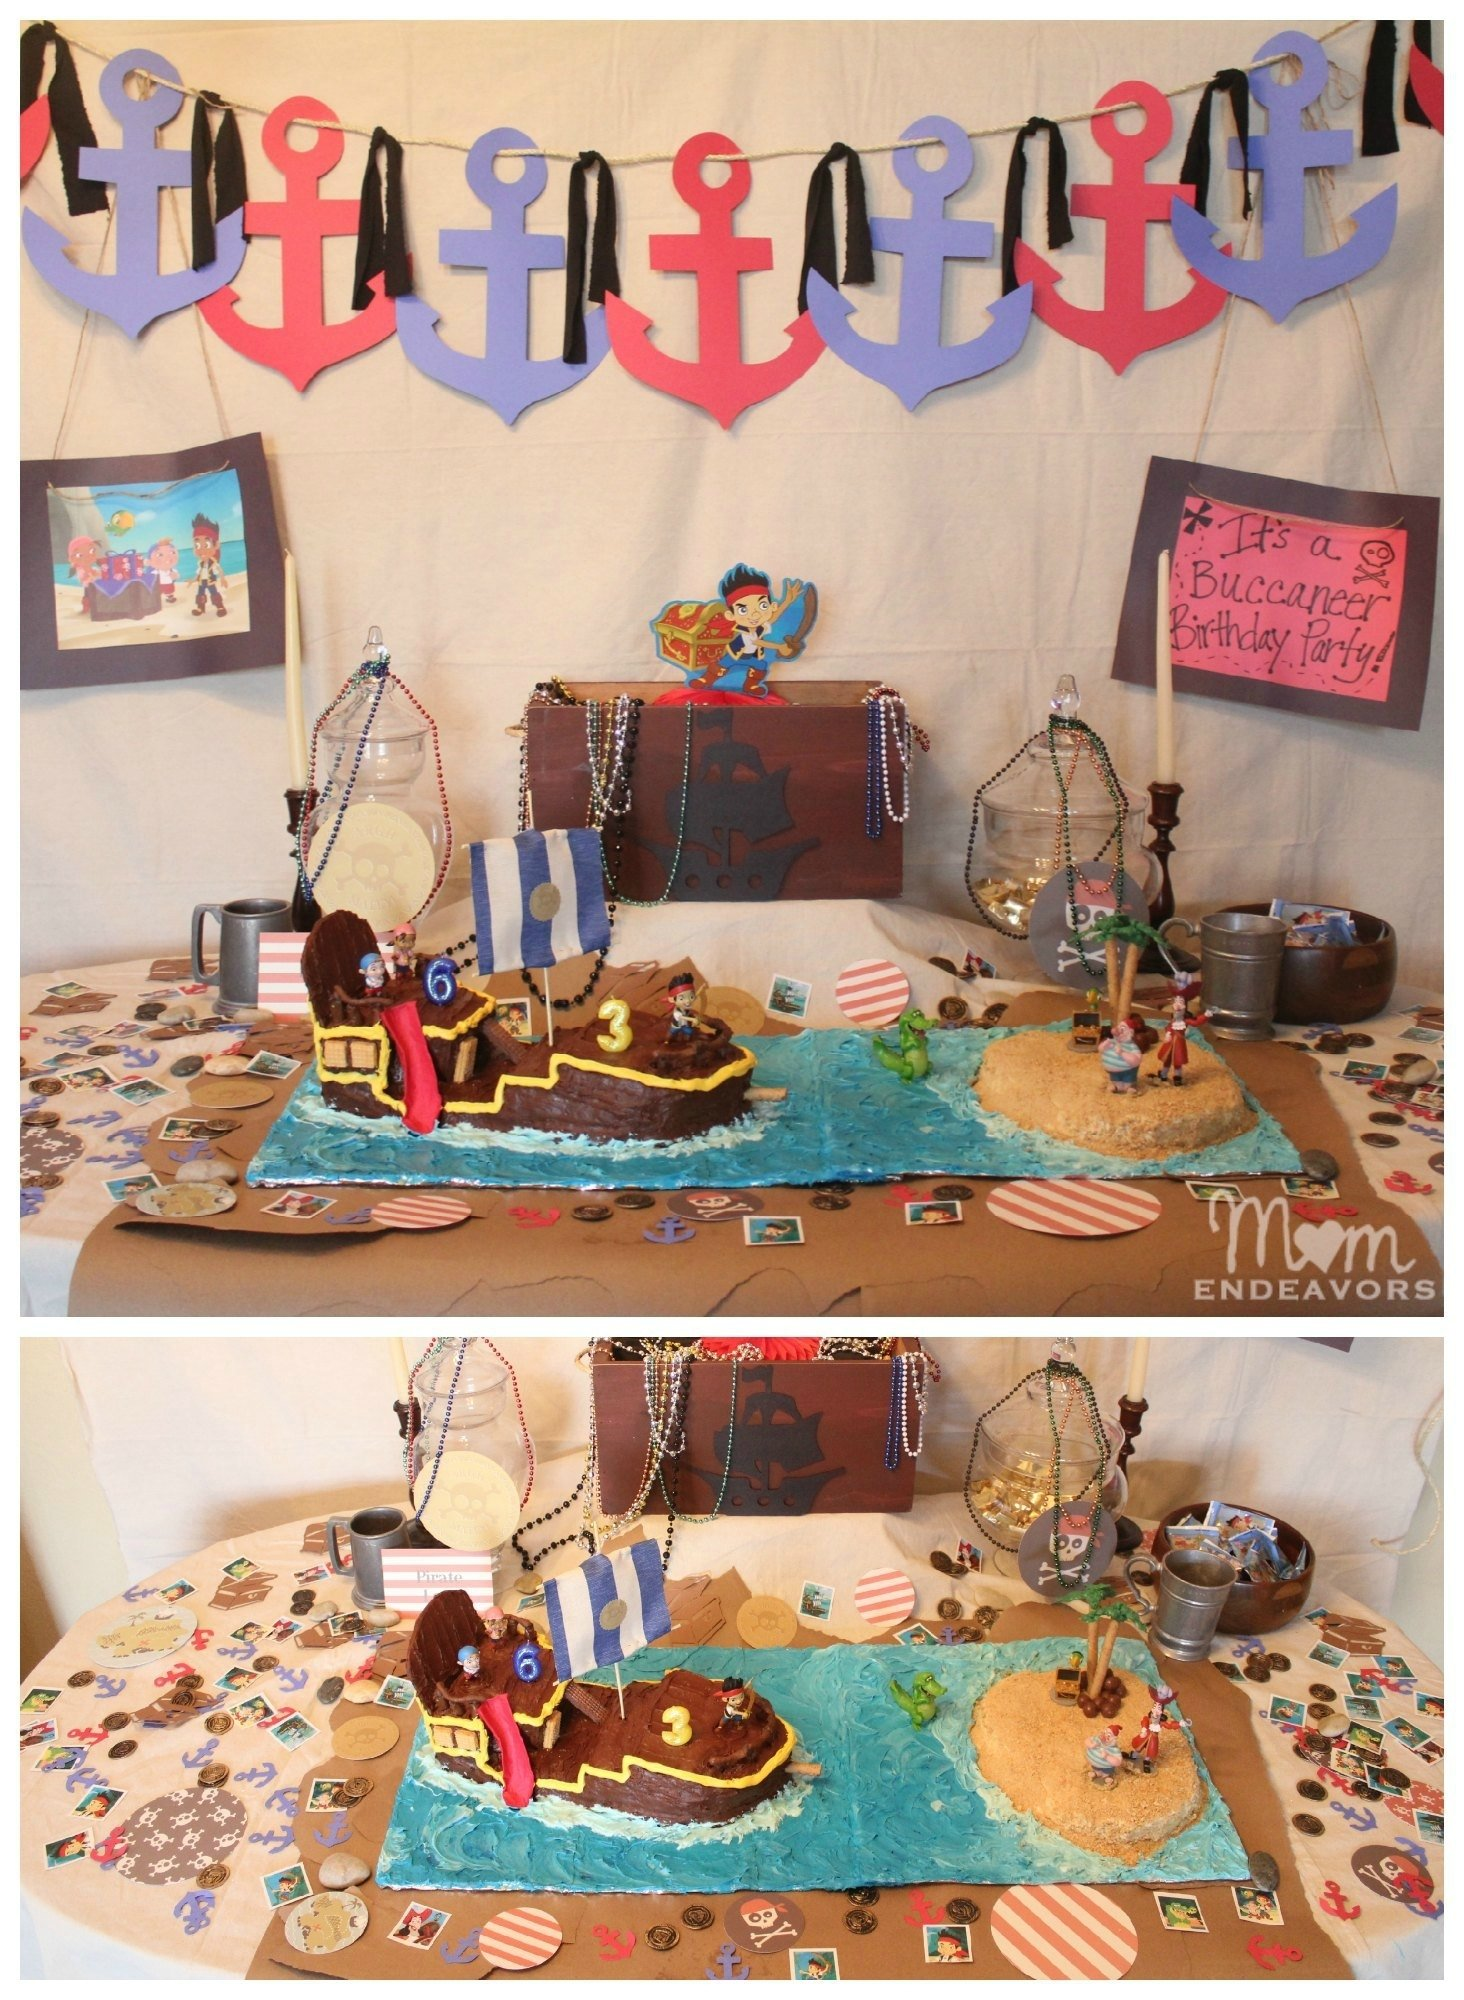 10 Unique Ideas For Jake And The Neverland Pirates Party fresh jake and the neverland pirates party decoration ideas 1 2021